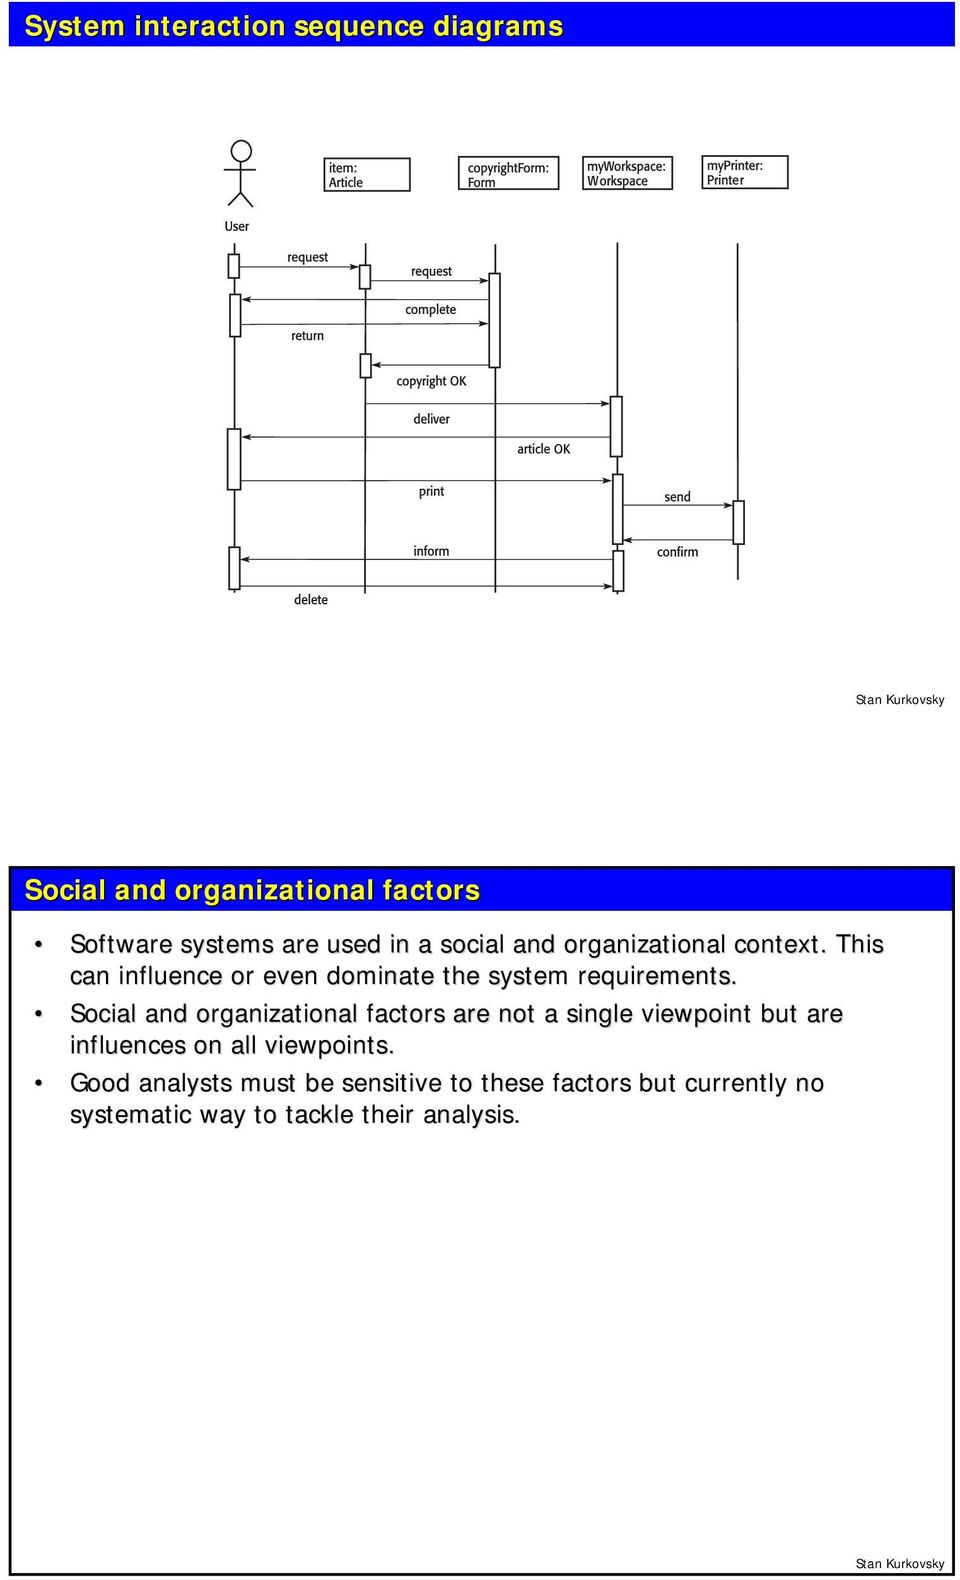 Social and organizational factors are not a single viewpoint but are influences on all viewpoints.